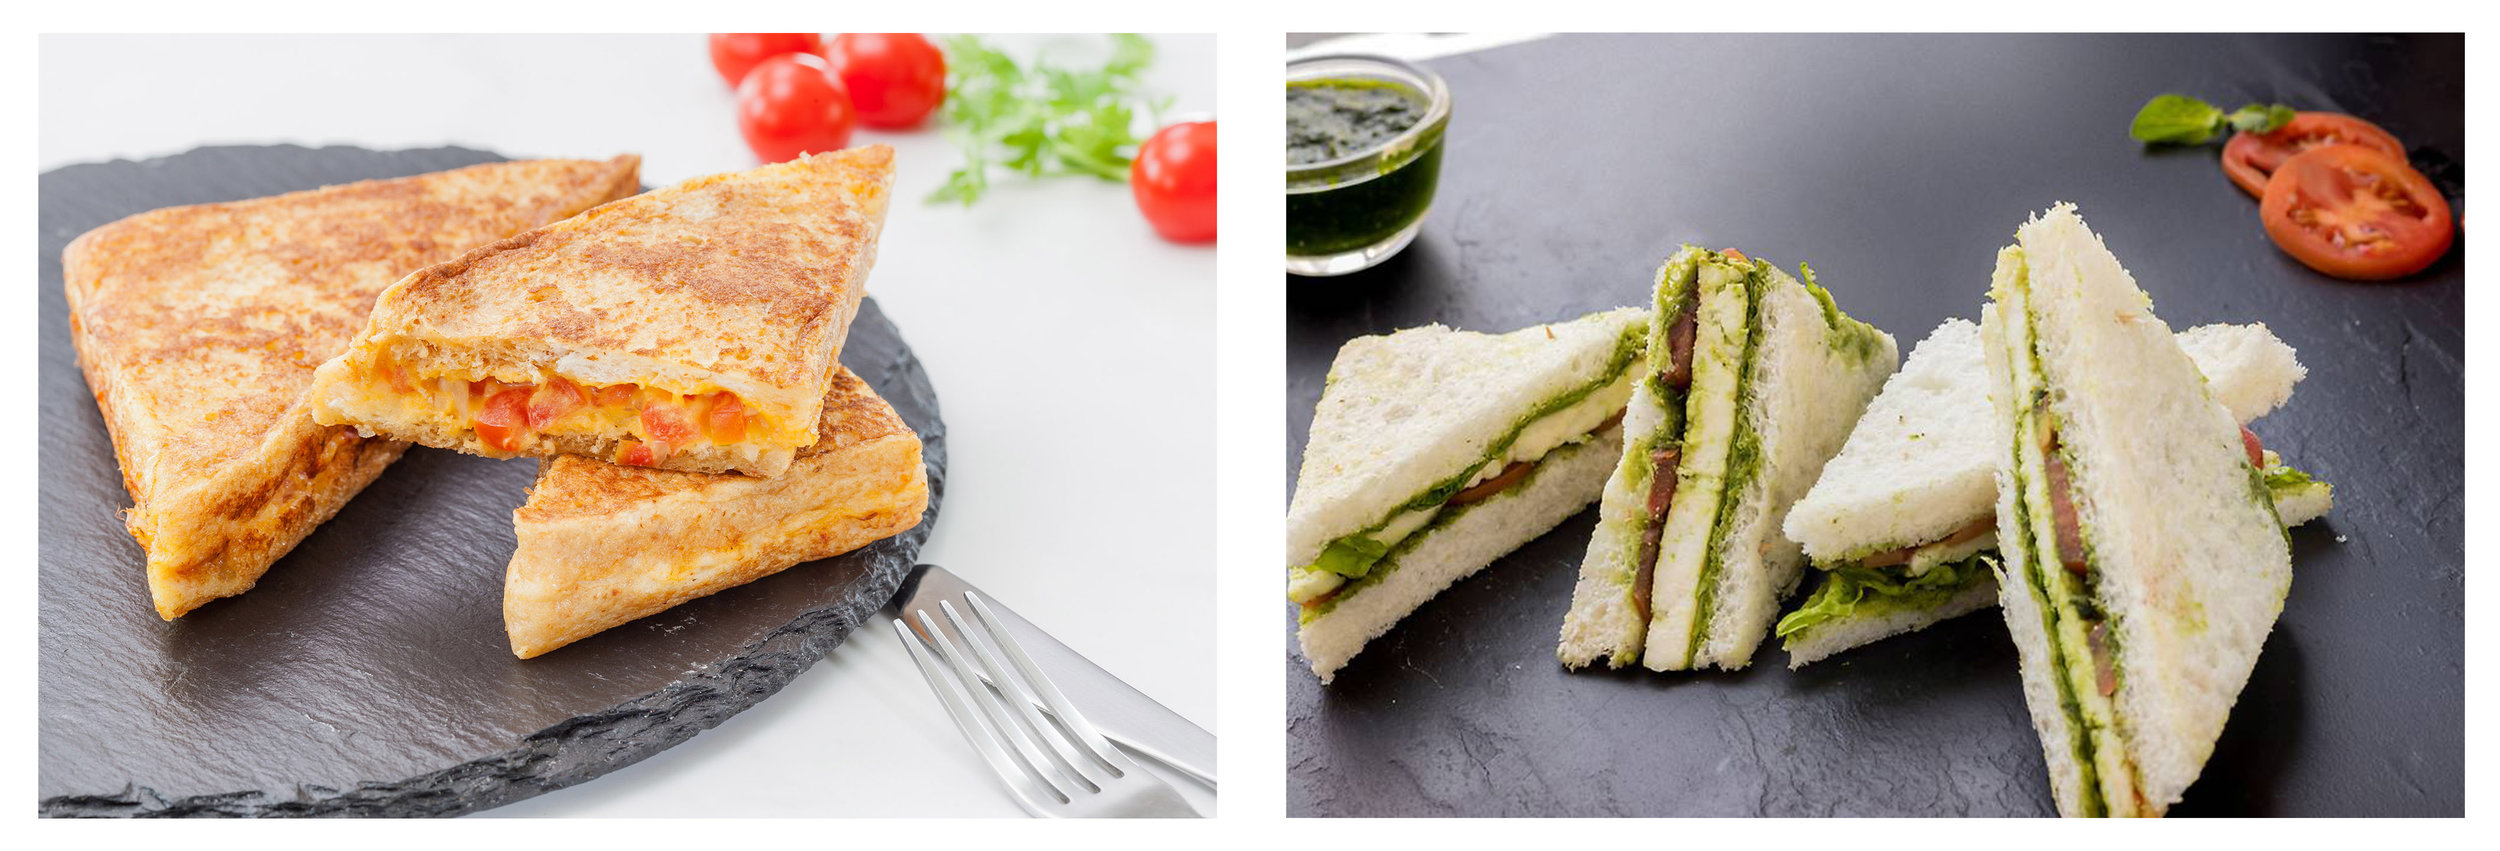 Desi French Toast (left); Home Style Chutney Paneer Sandwich (right)